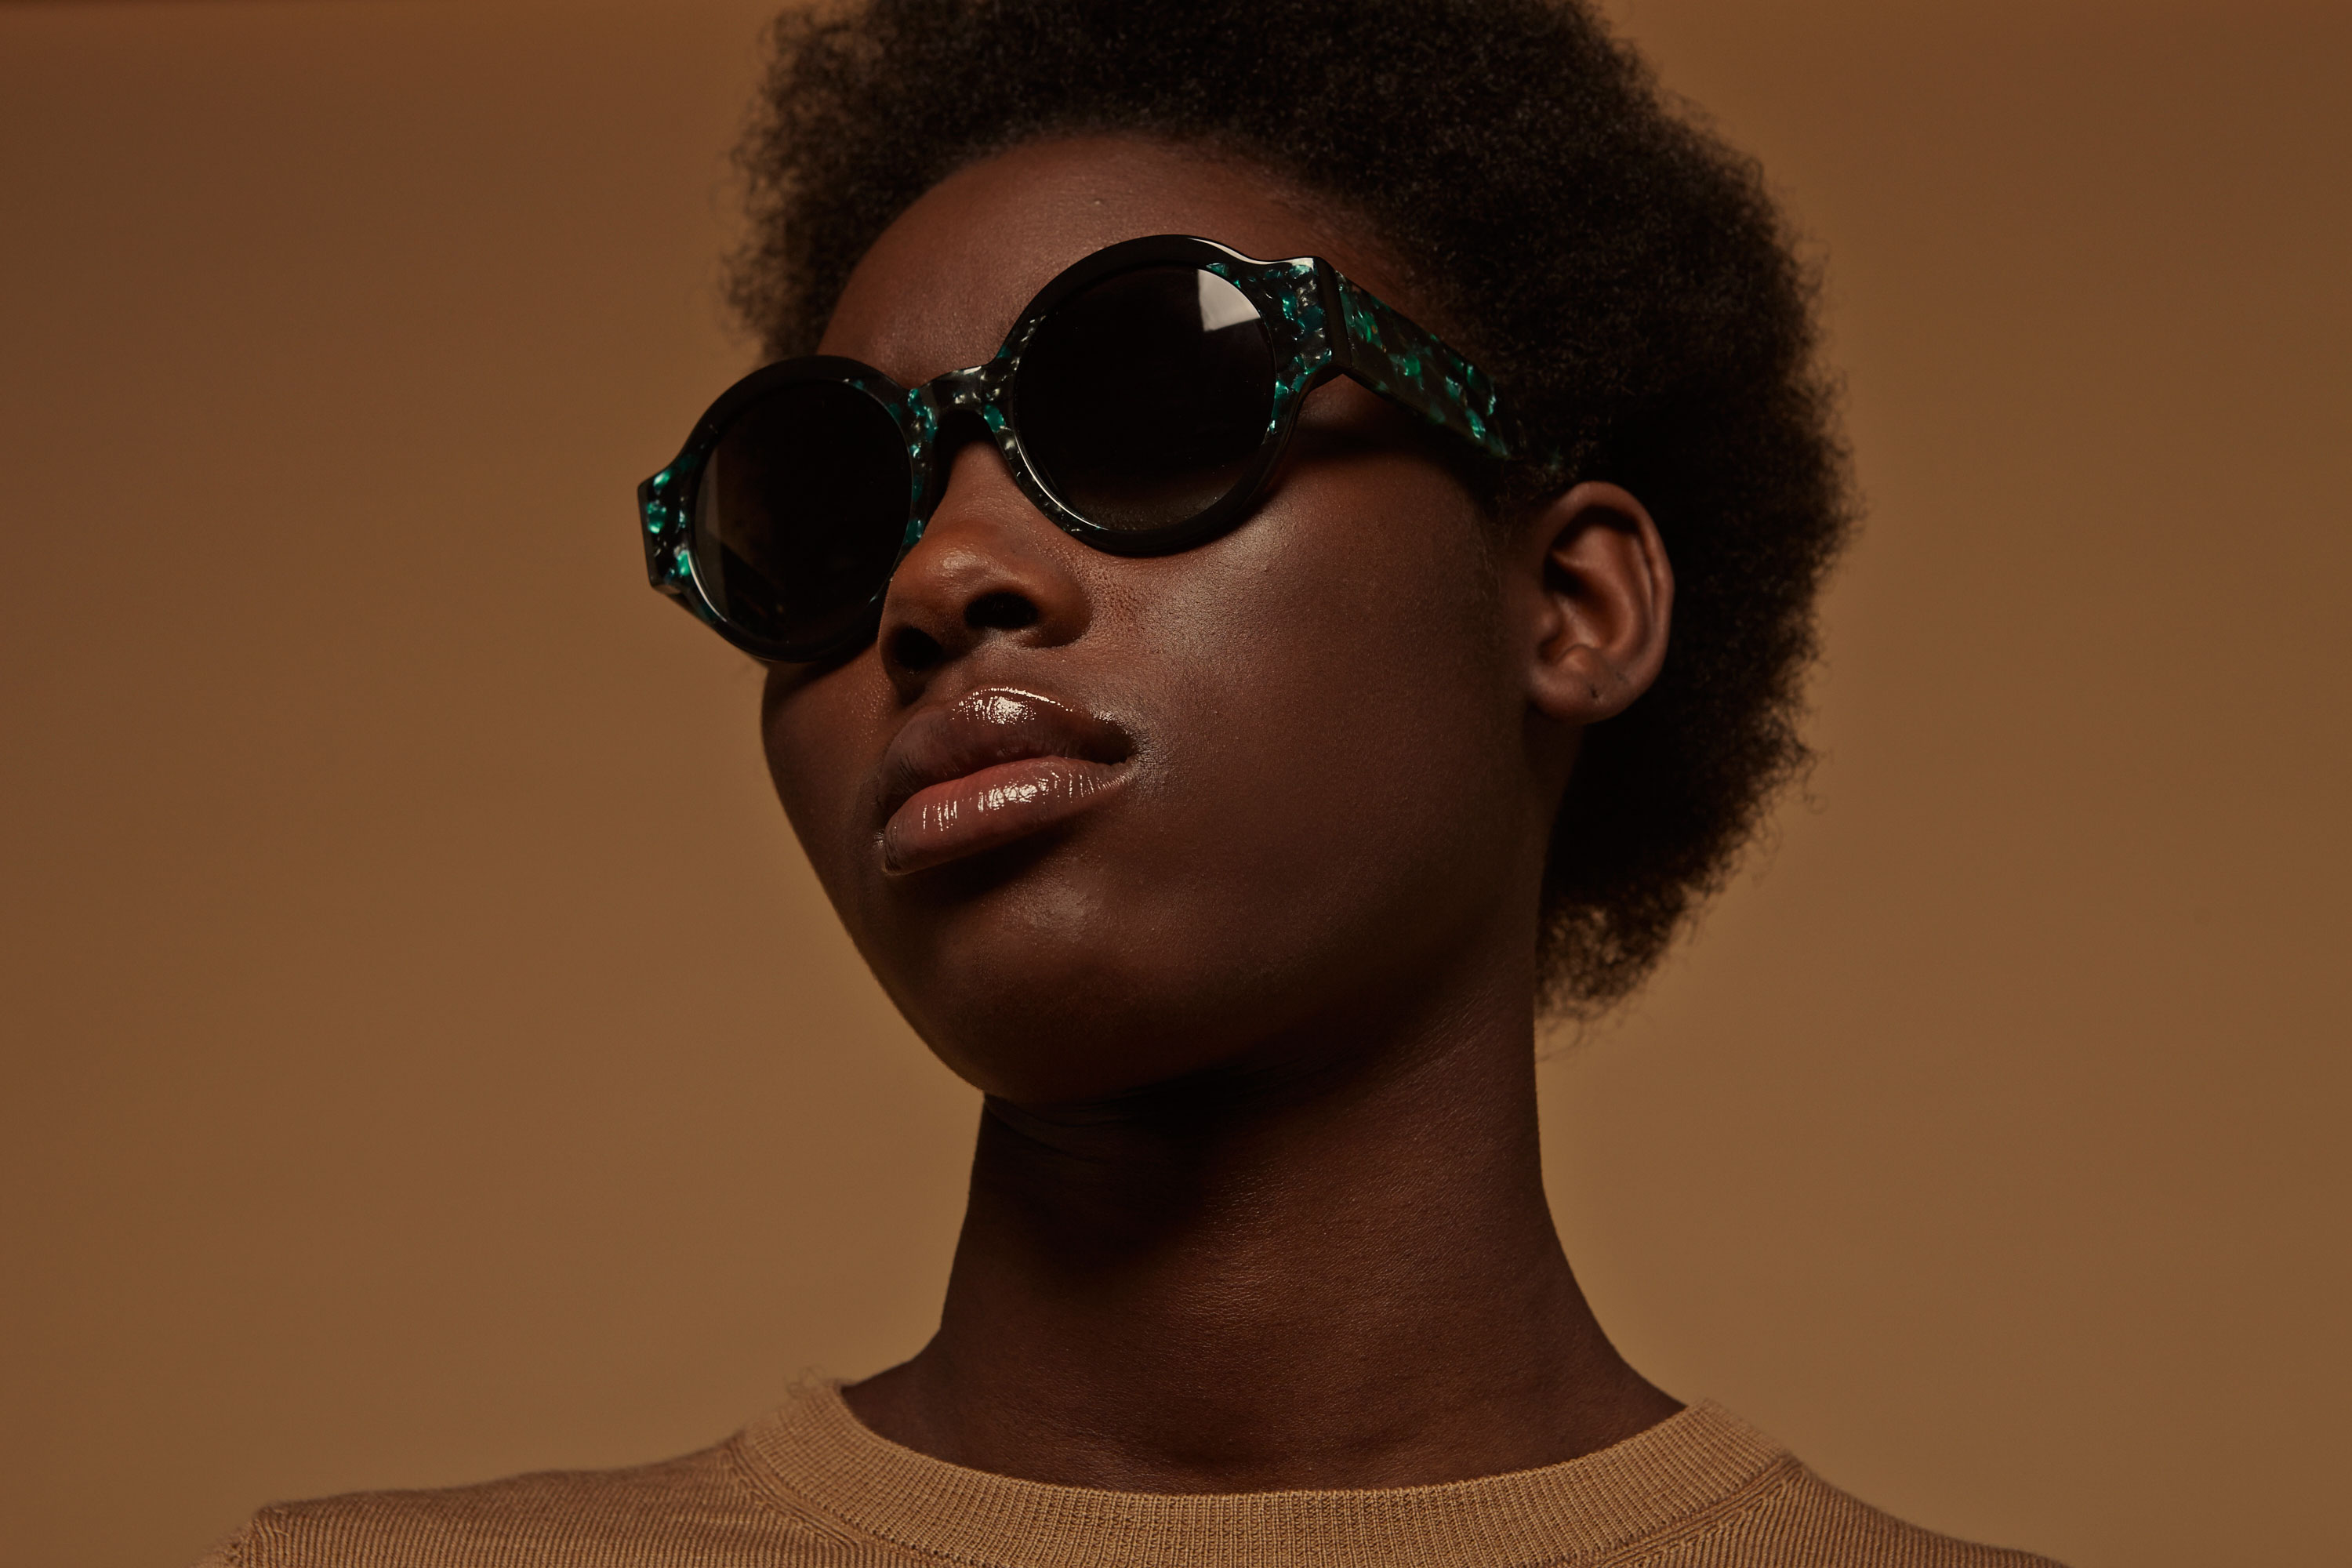 Heart acetate rounded green sunglasses by GIGI Studios